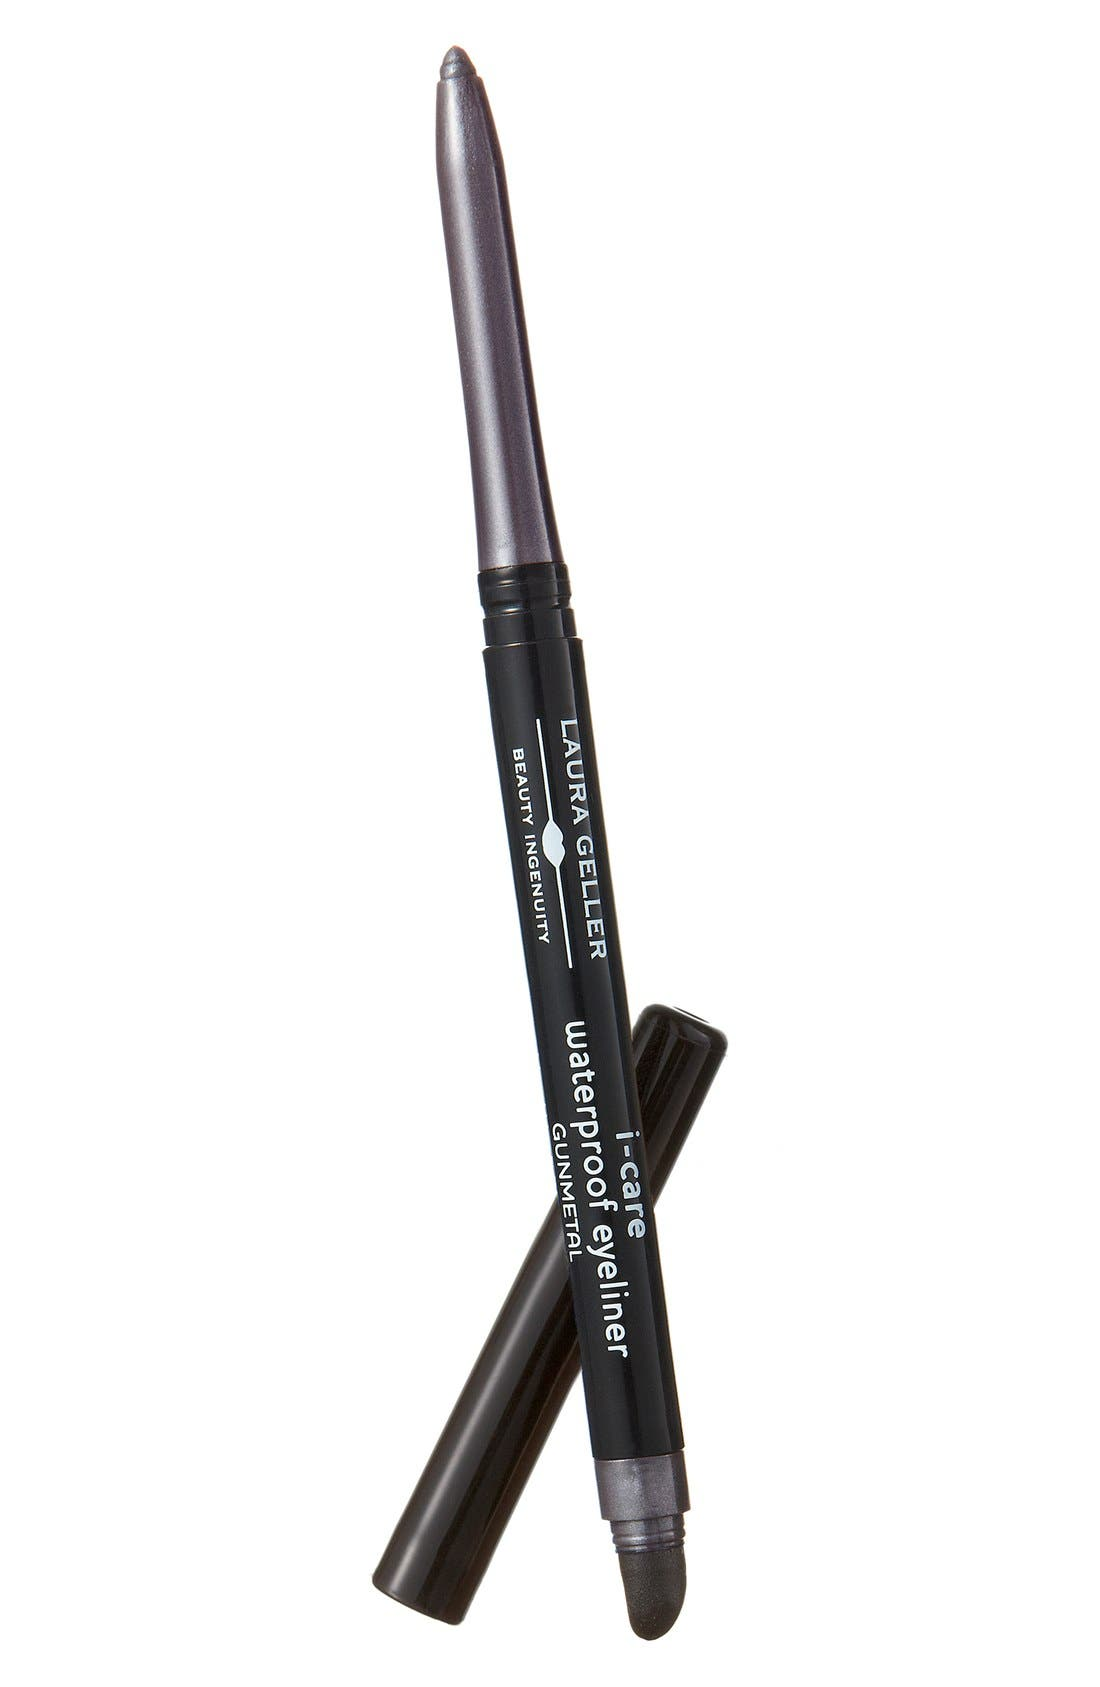 Laura Geller Beauty 'I-Care' Waterproof Eyeliner